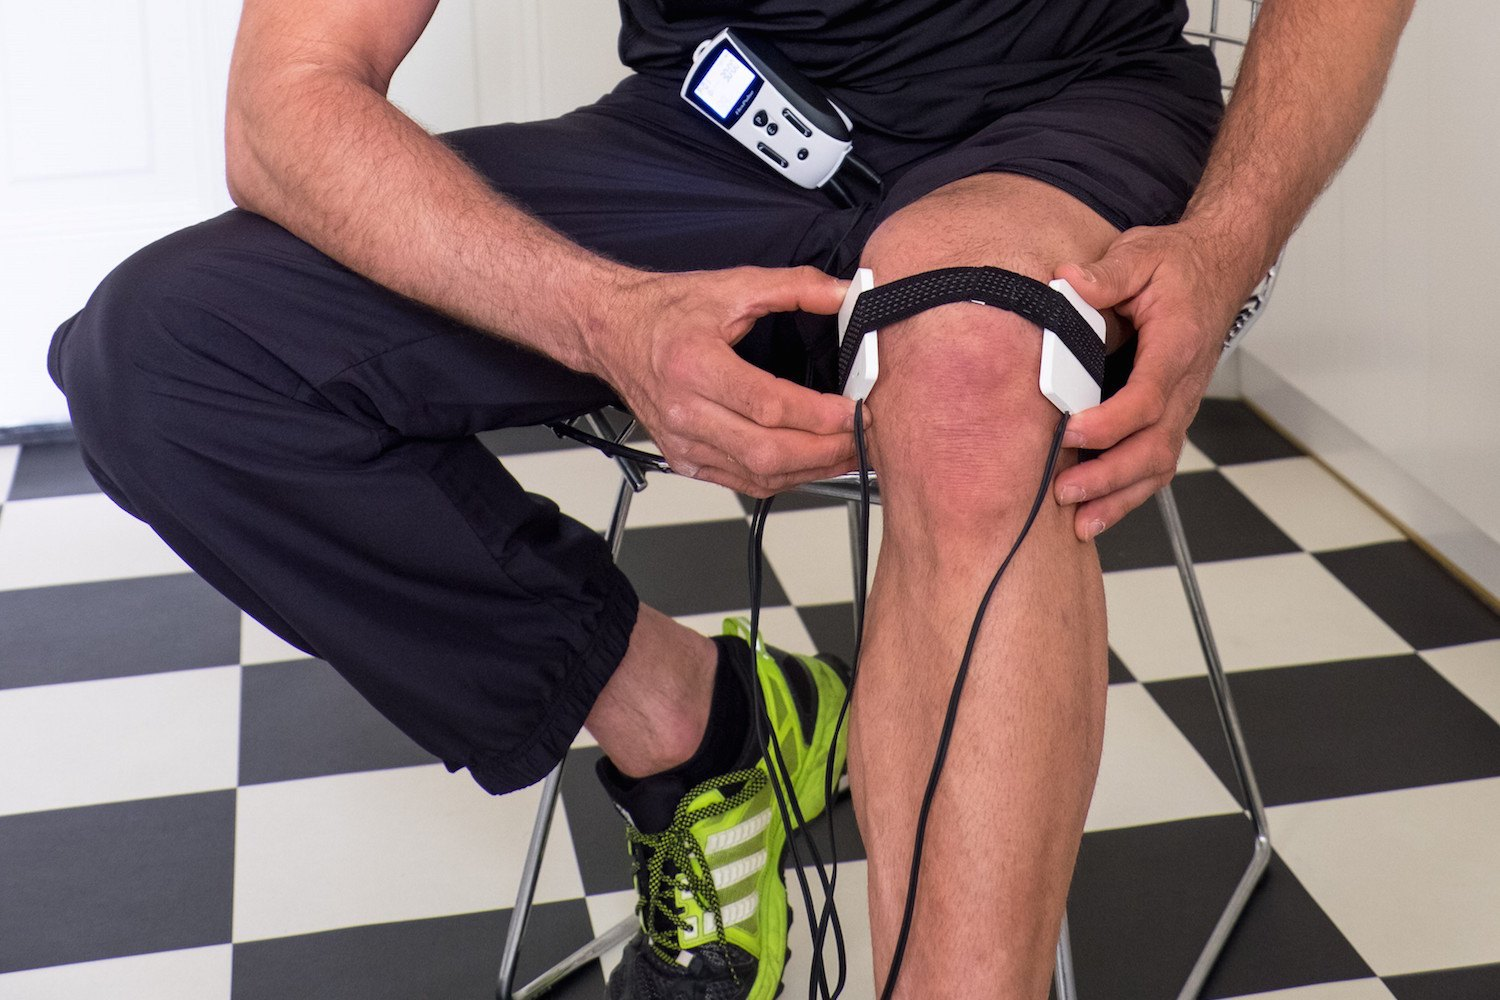 PEMF devices for Recovery and Pain